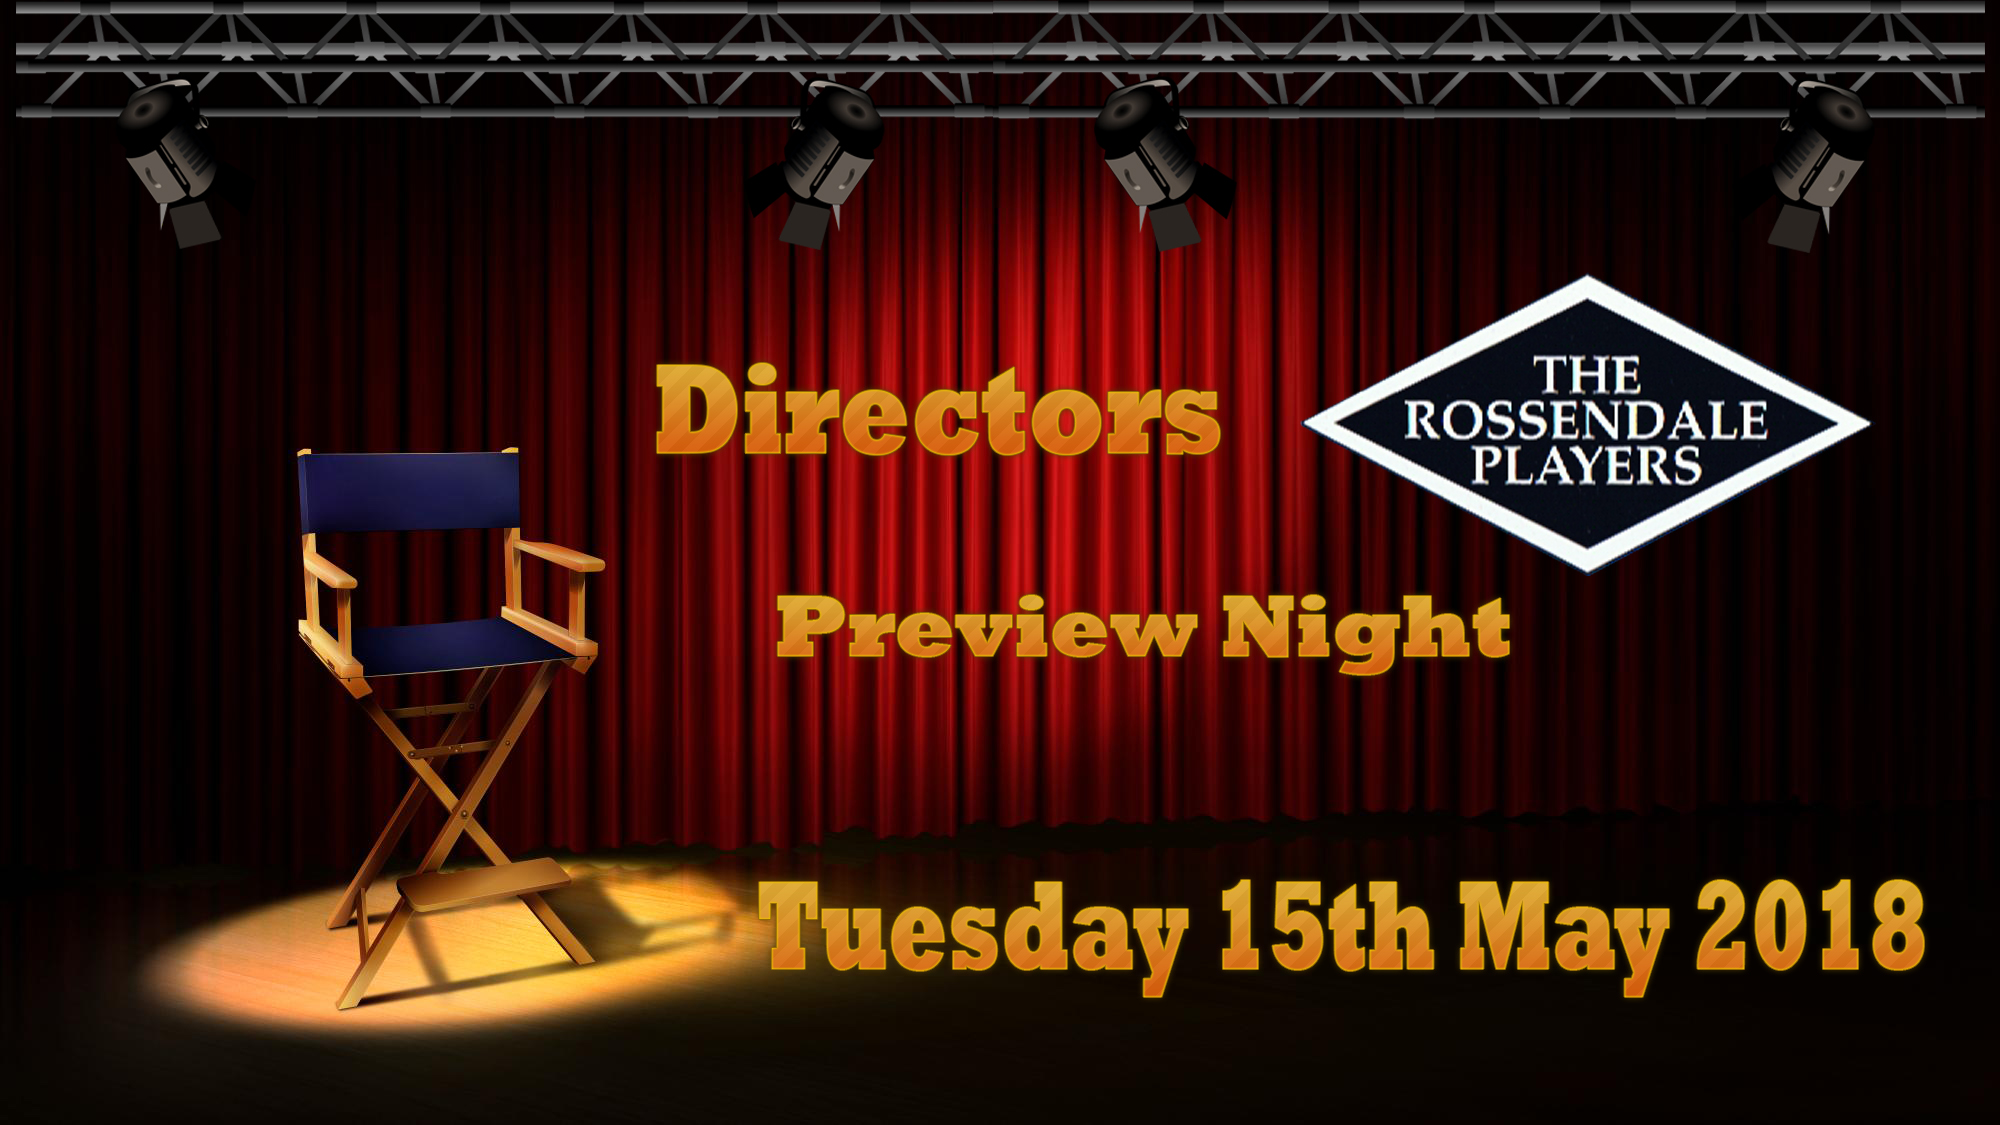 Directors Preview Evening 15th May 2018